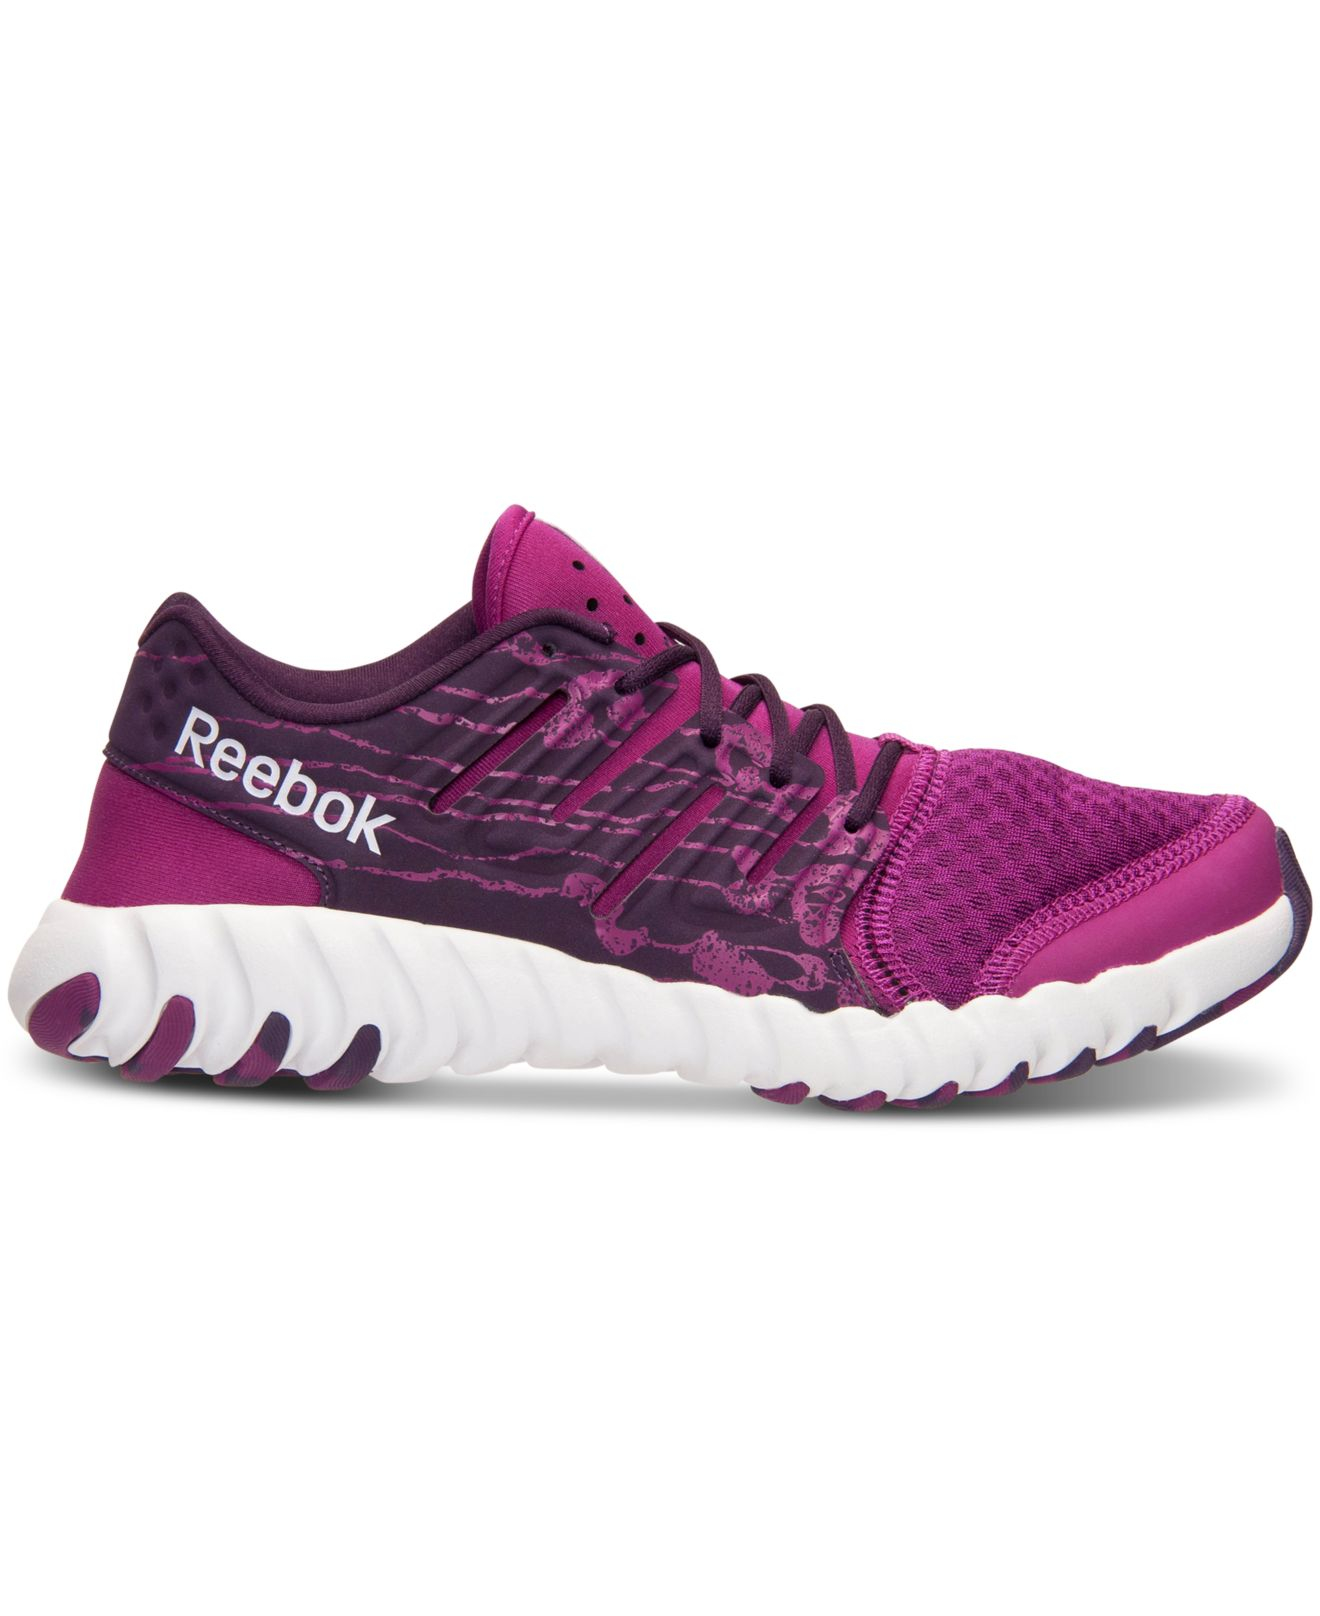 Lyst Reebok Women S Twistform Running Sneakers From